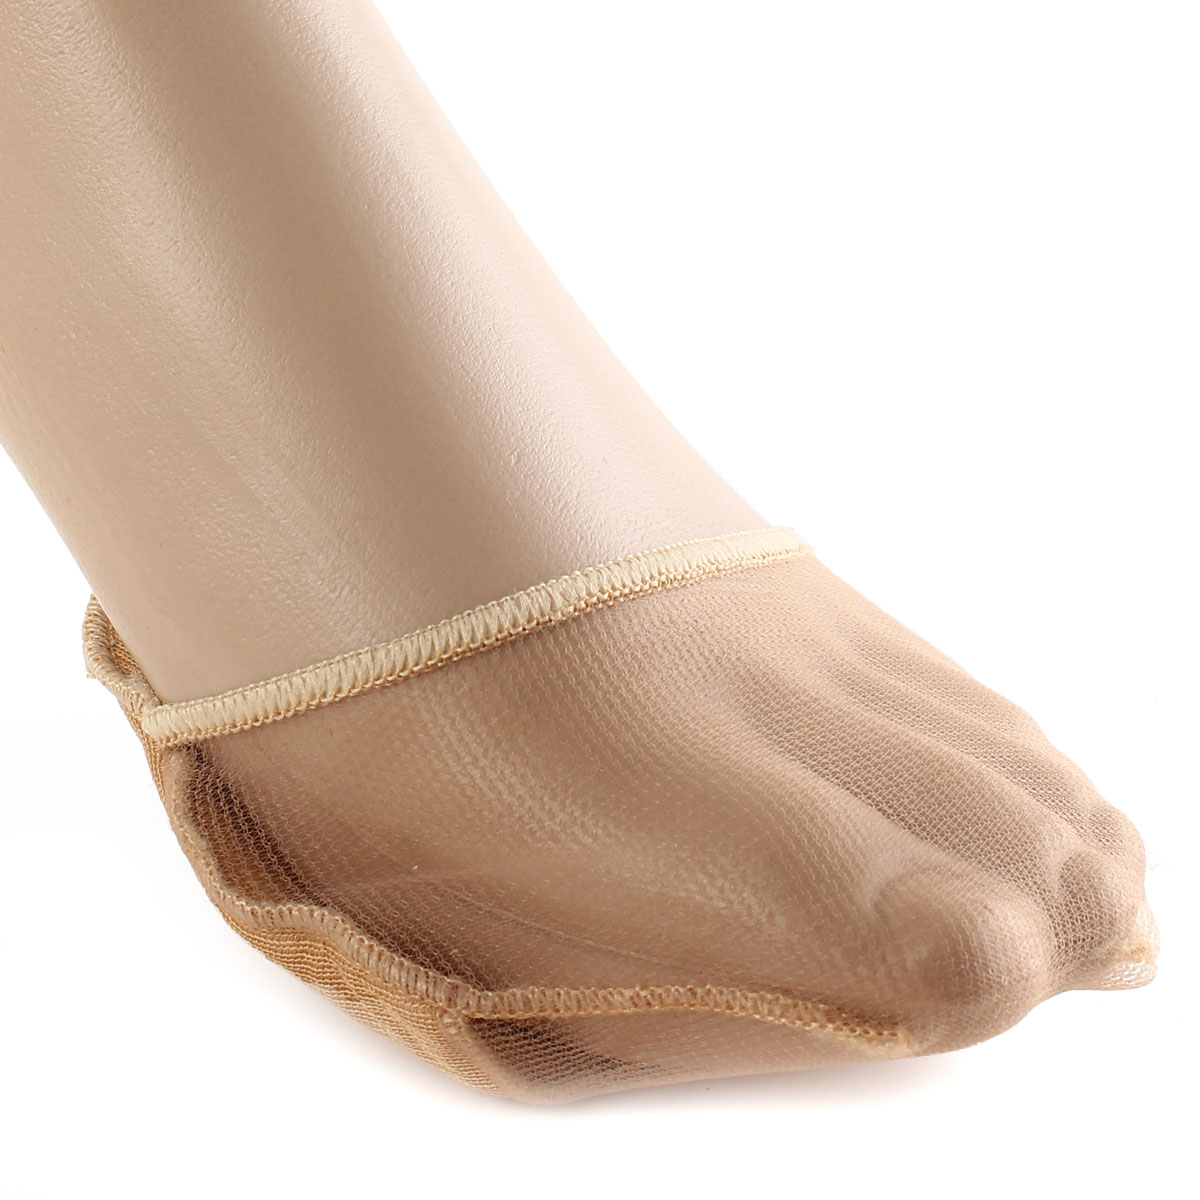 Full Toe Cover Shoes Cushion Pads Sore Forefoot Support